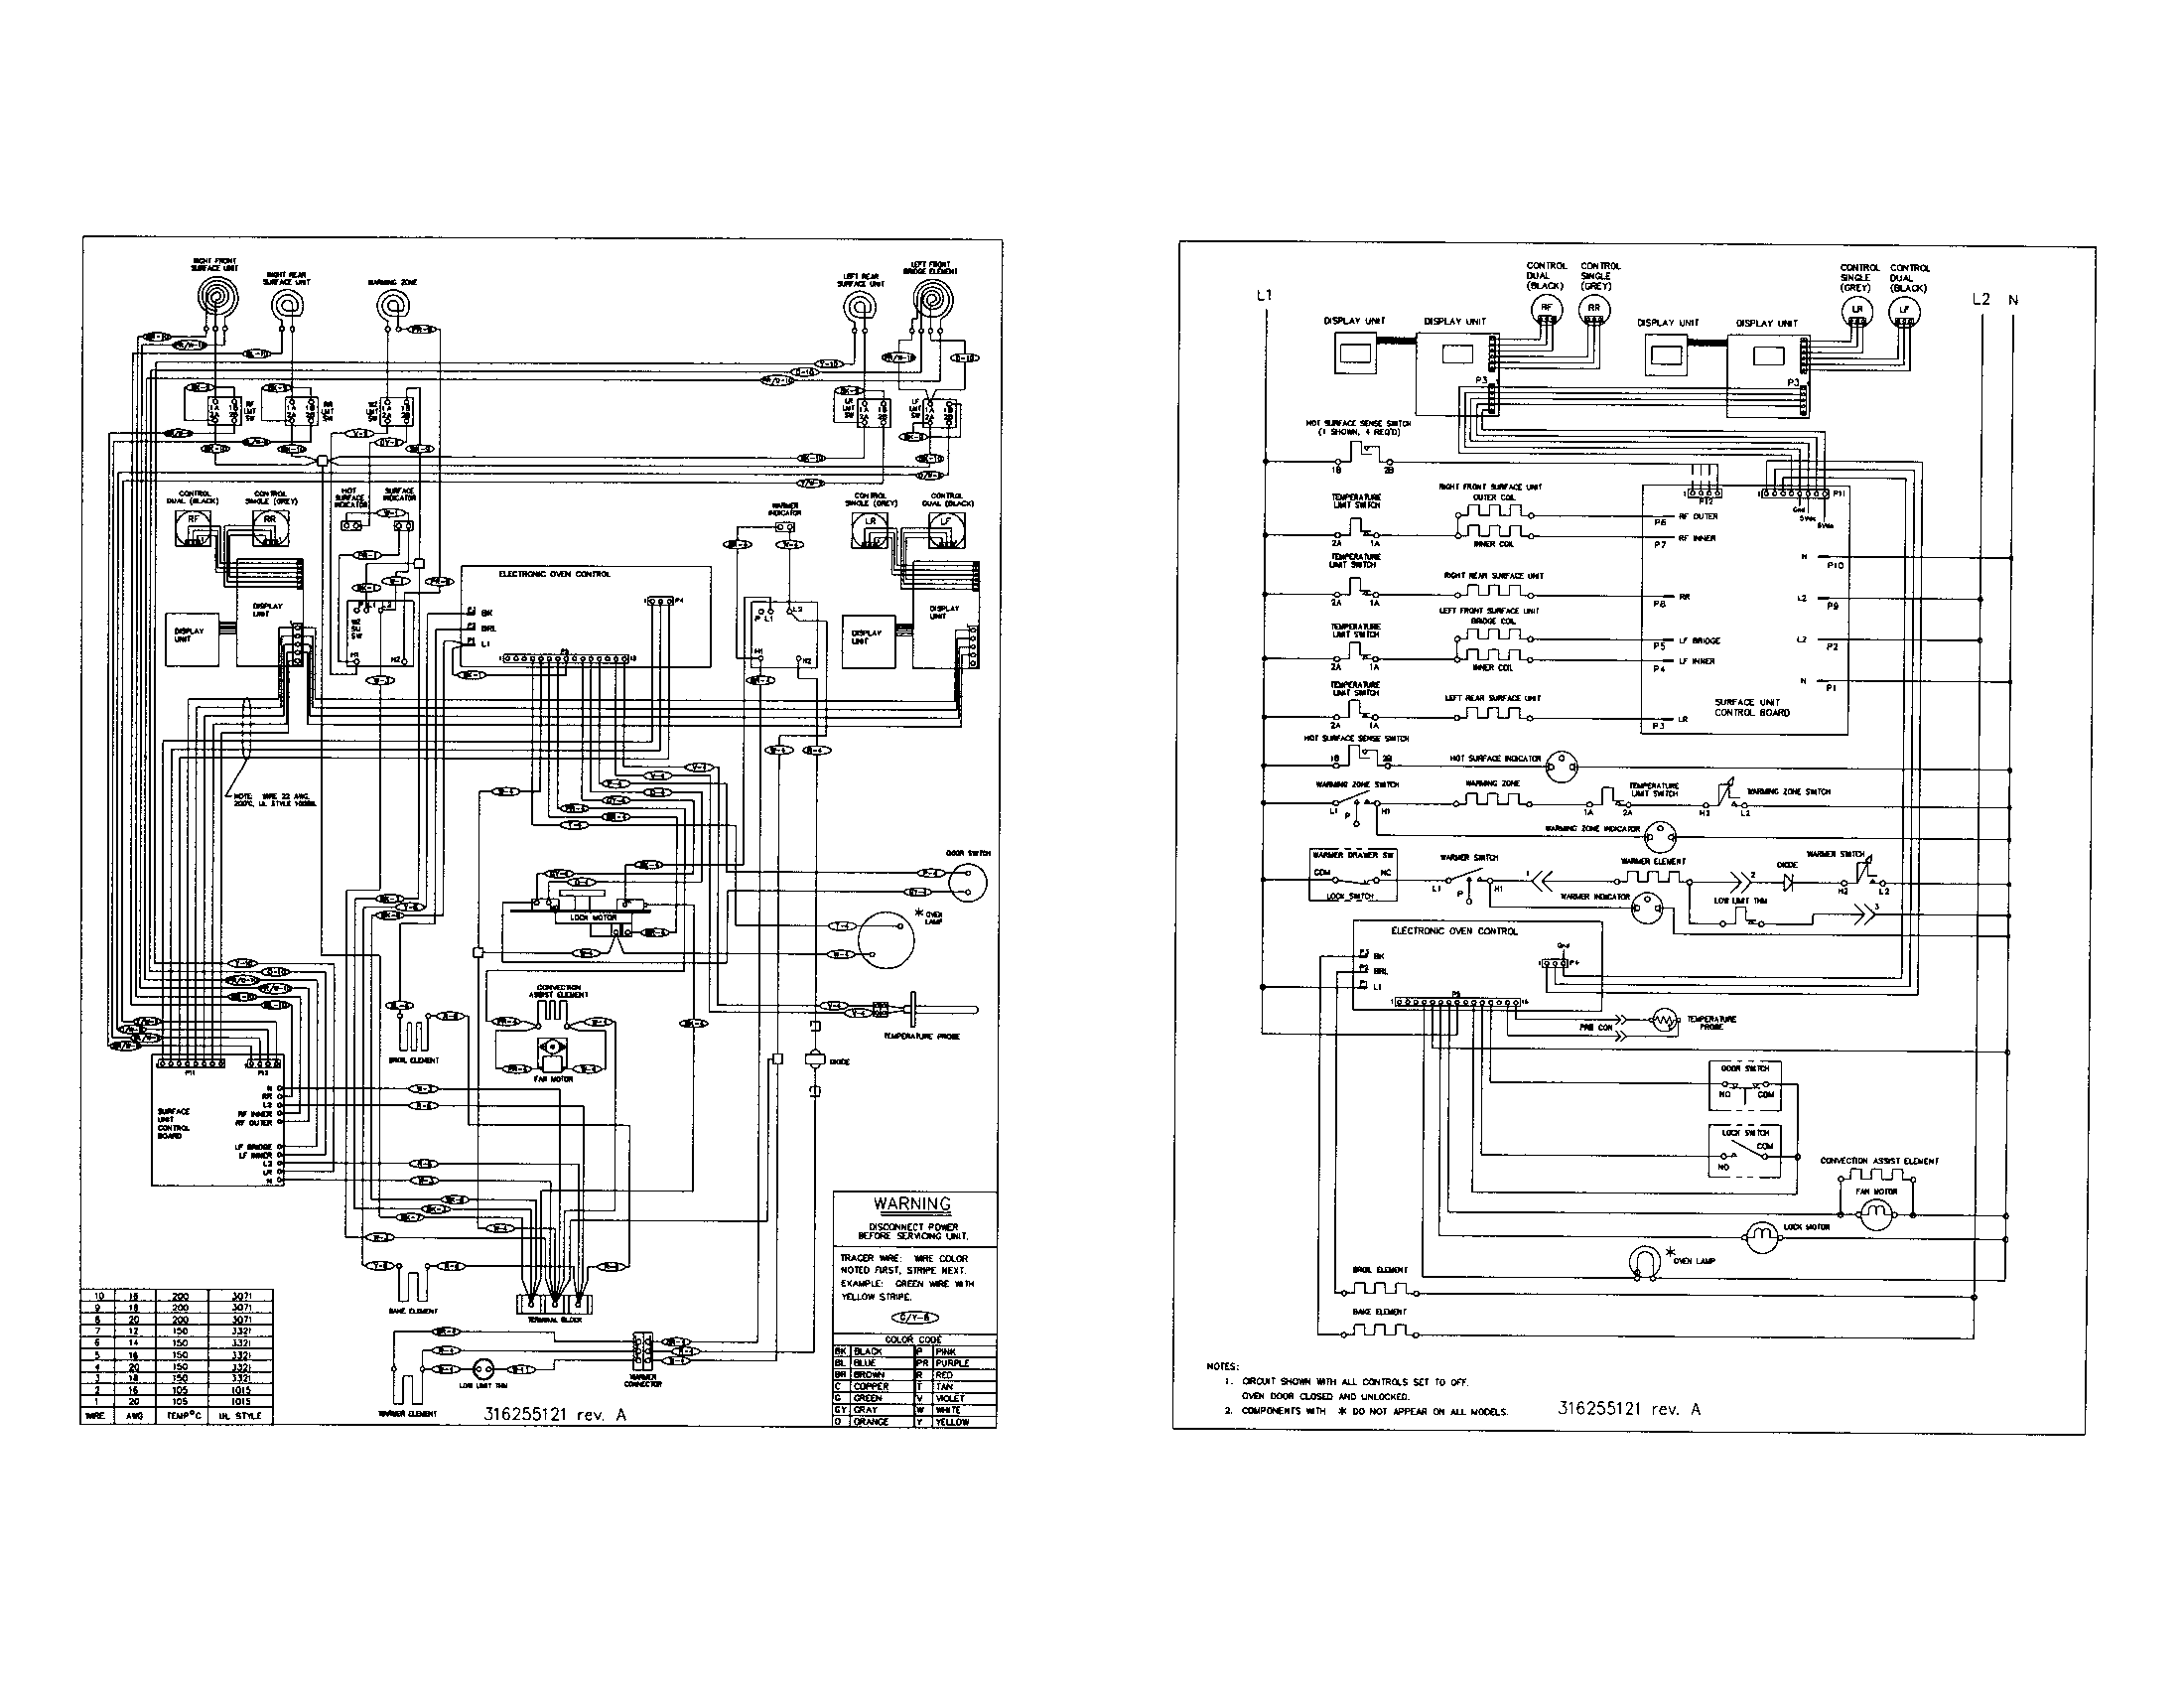 wiring diagram parts?resize\\\\\\\\\\\\\\\\\\\\\\\\\\\\\\\\\\\\\\\\\\\\\\\\\\\\\\\\\\\\\\\=665%2C513 electric oven wiring diagram & general electric oven wiring electric hob wiring diagram at n-0.co